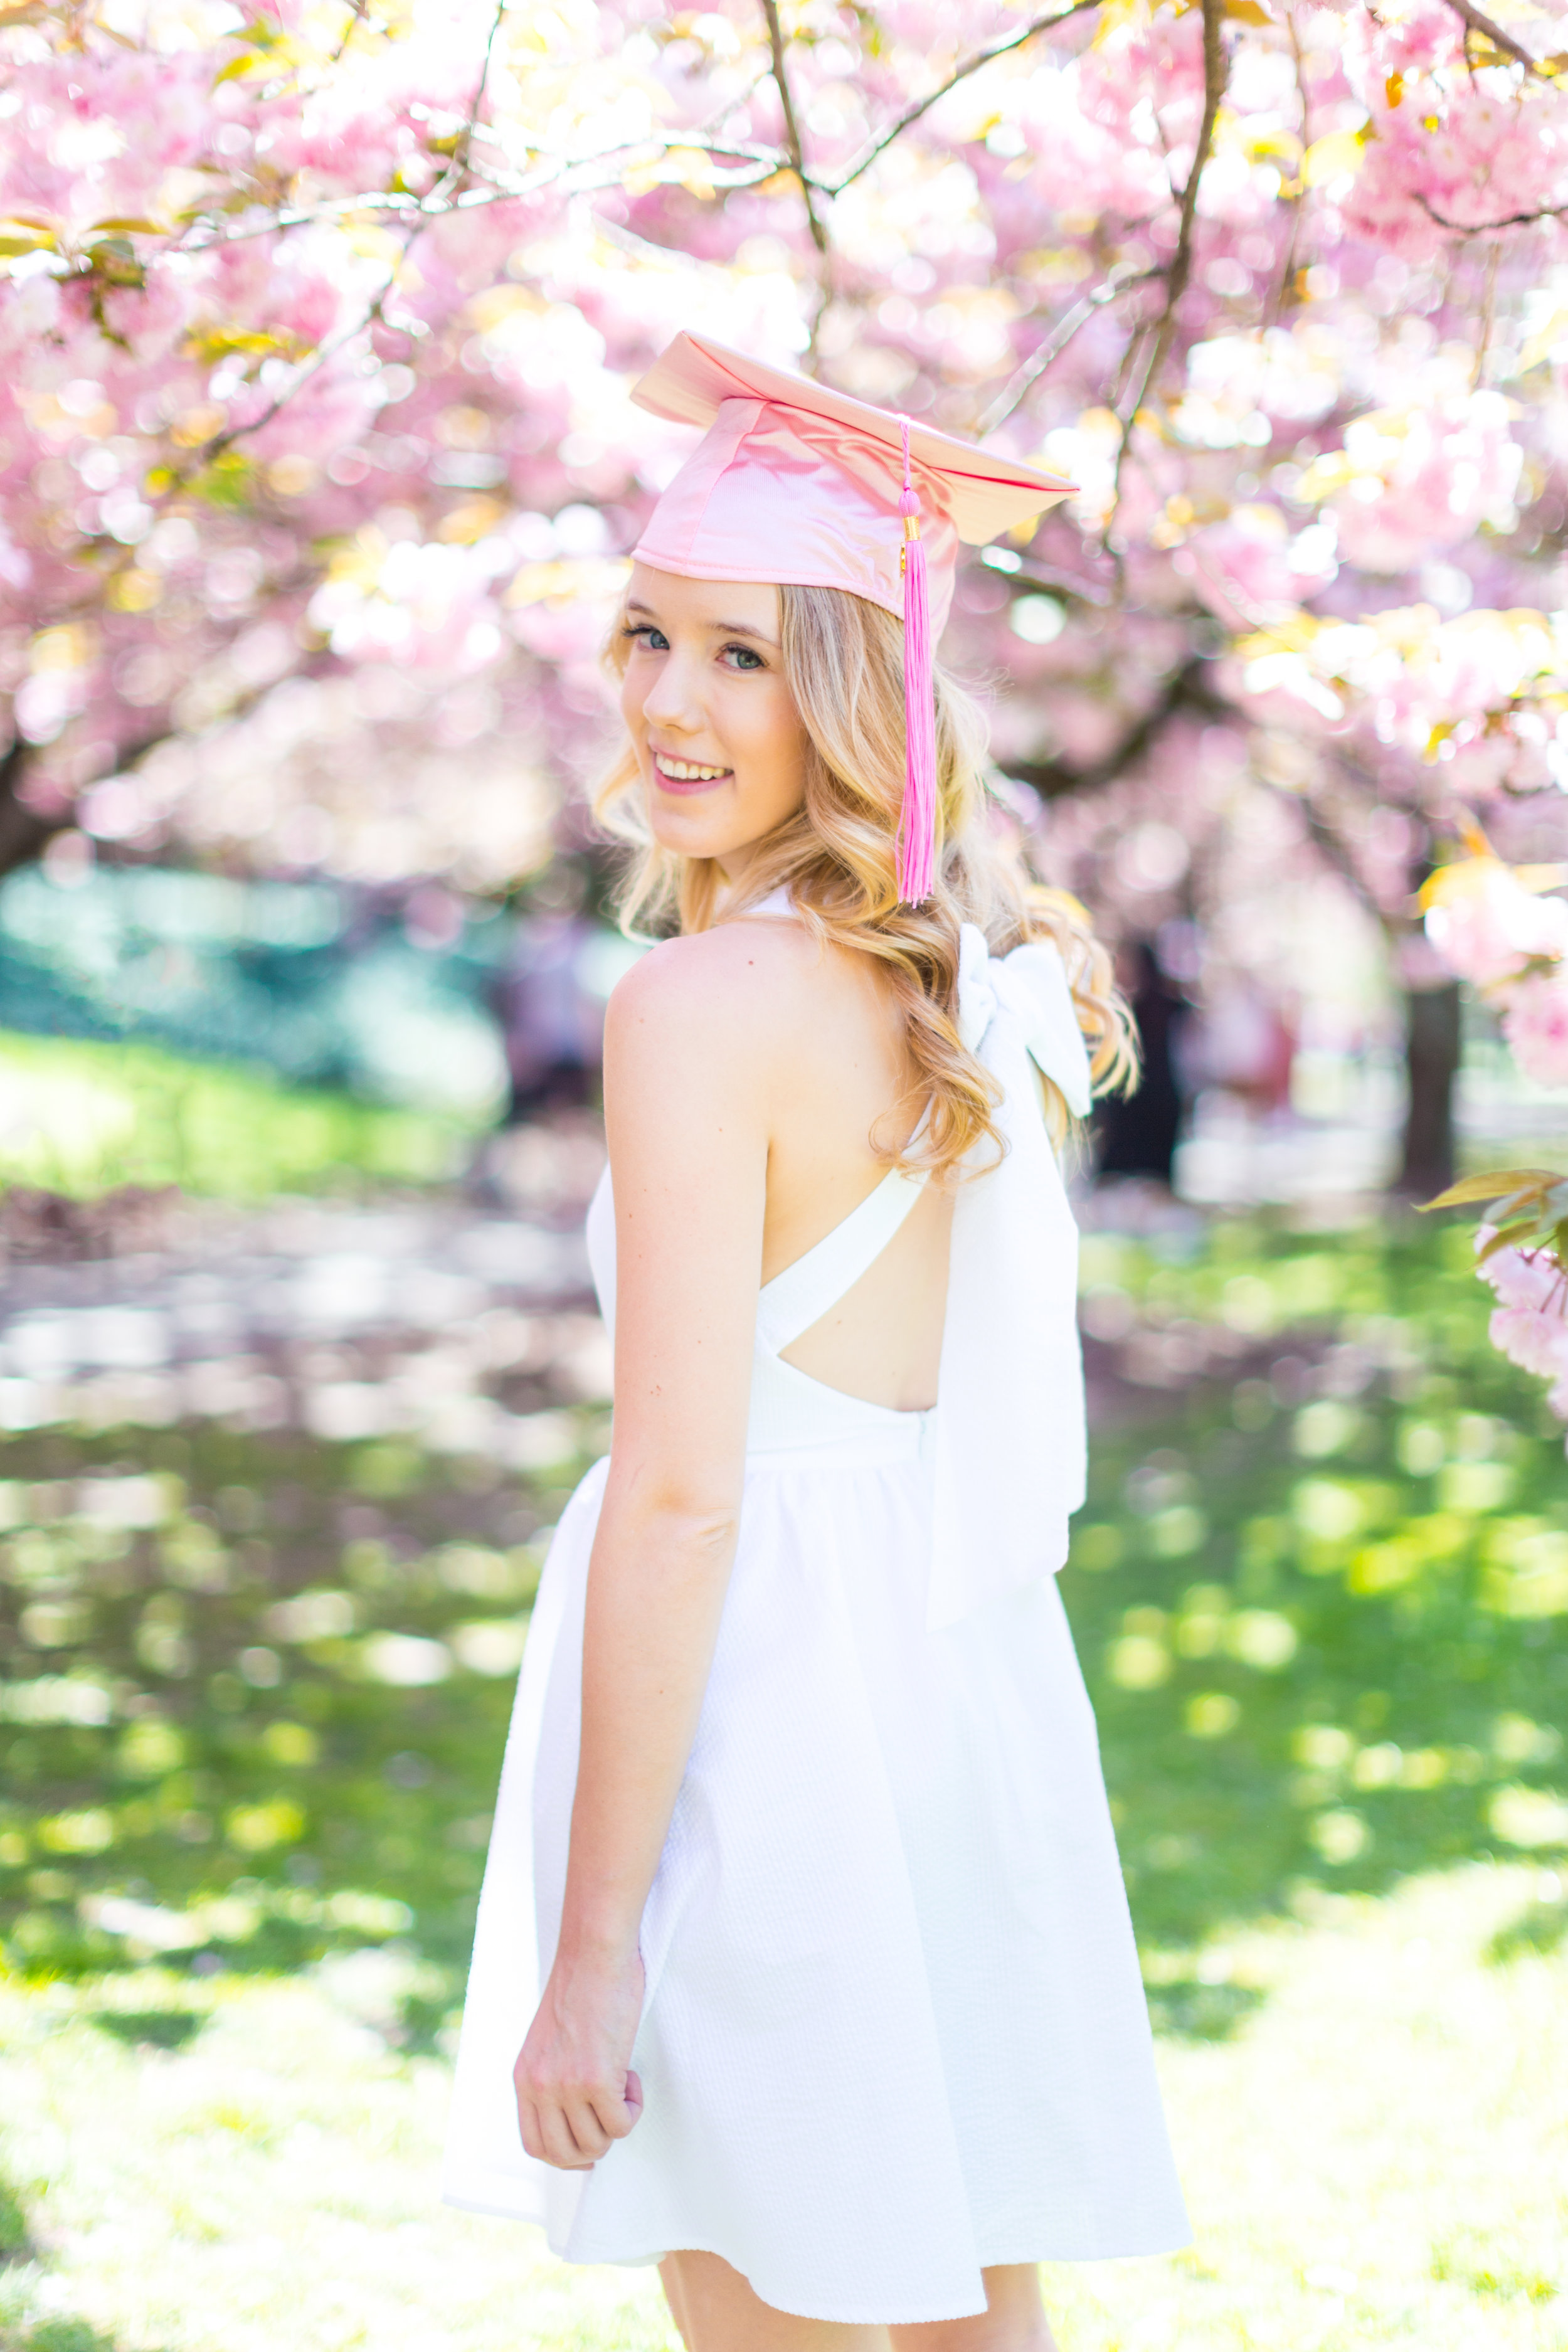 White Graduation Dress Spring Pink Cherry Blossoms NYC-14.jpg